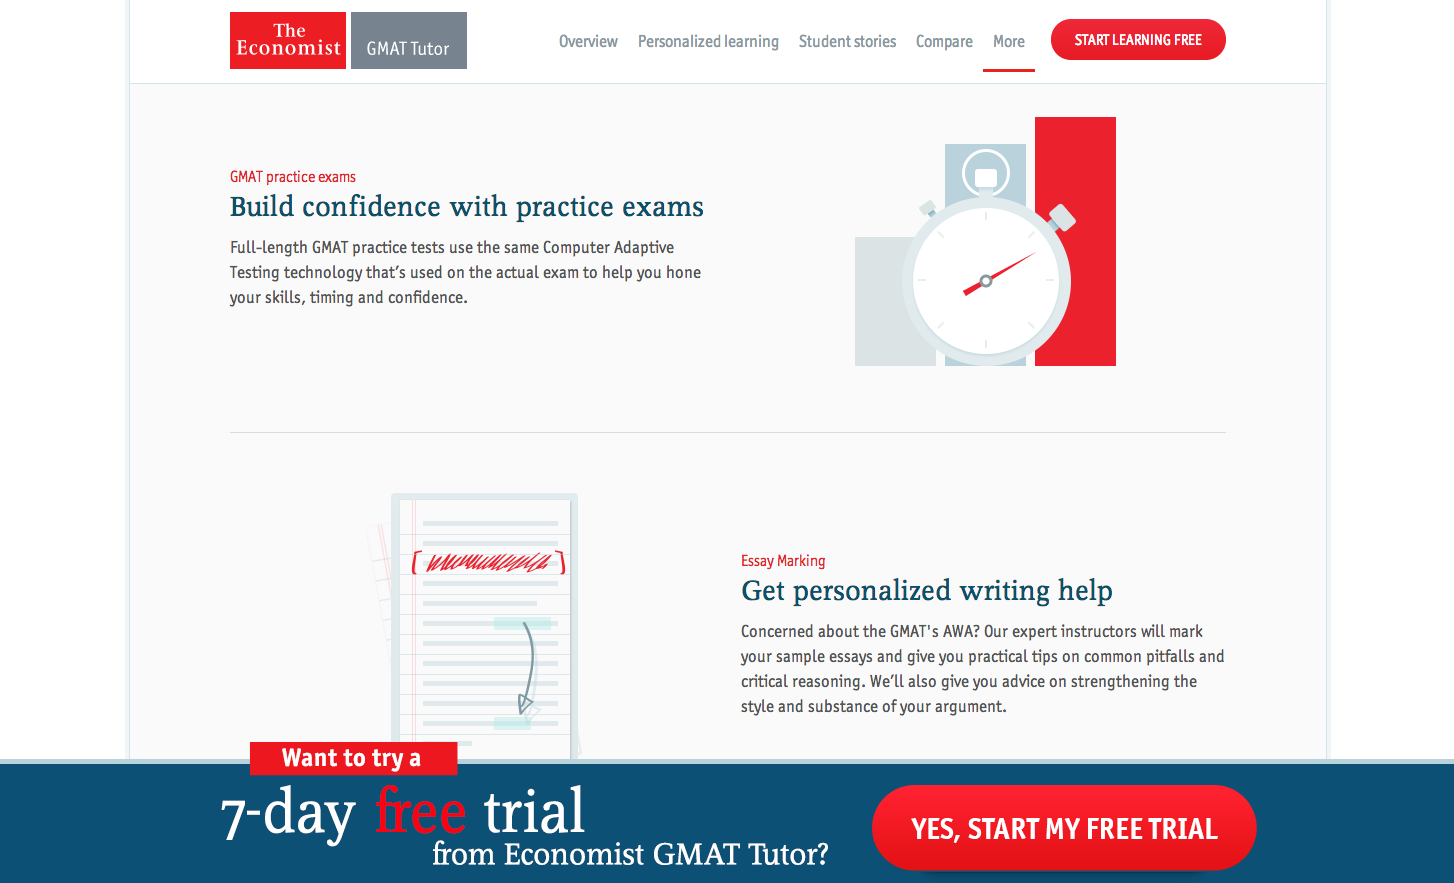 essay gmat graded Gmat score's manual grading services gmat score's essay grading service is an inexpensive and quick way to get feedback on your responses to the essay questions.